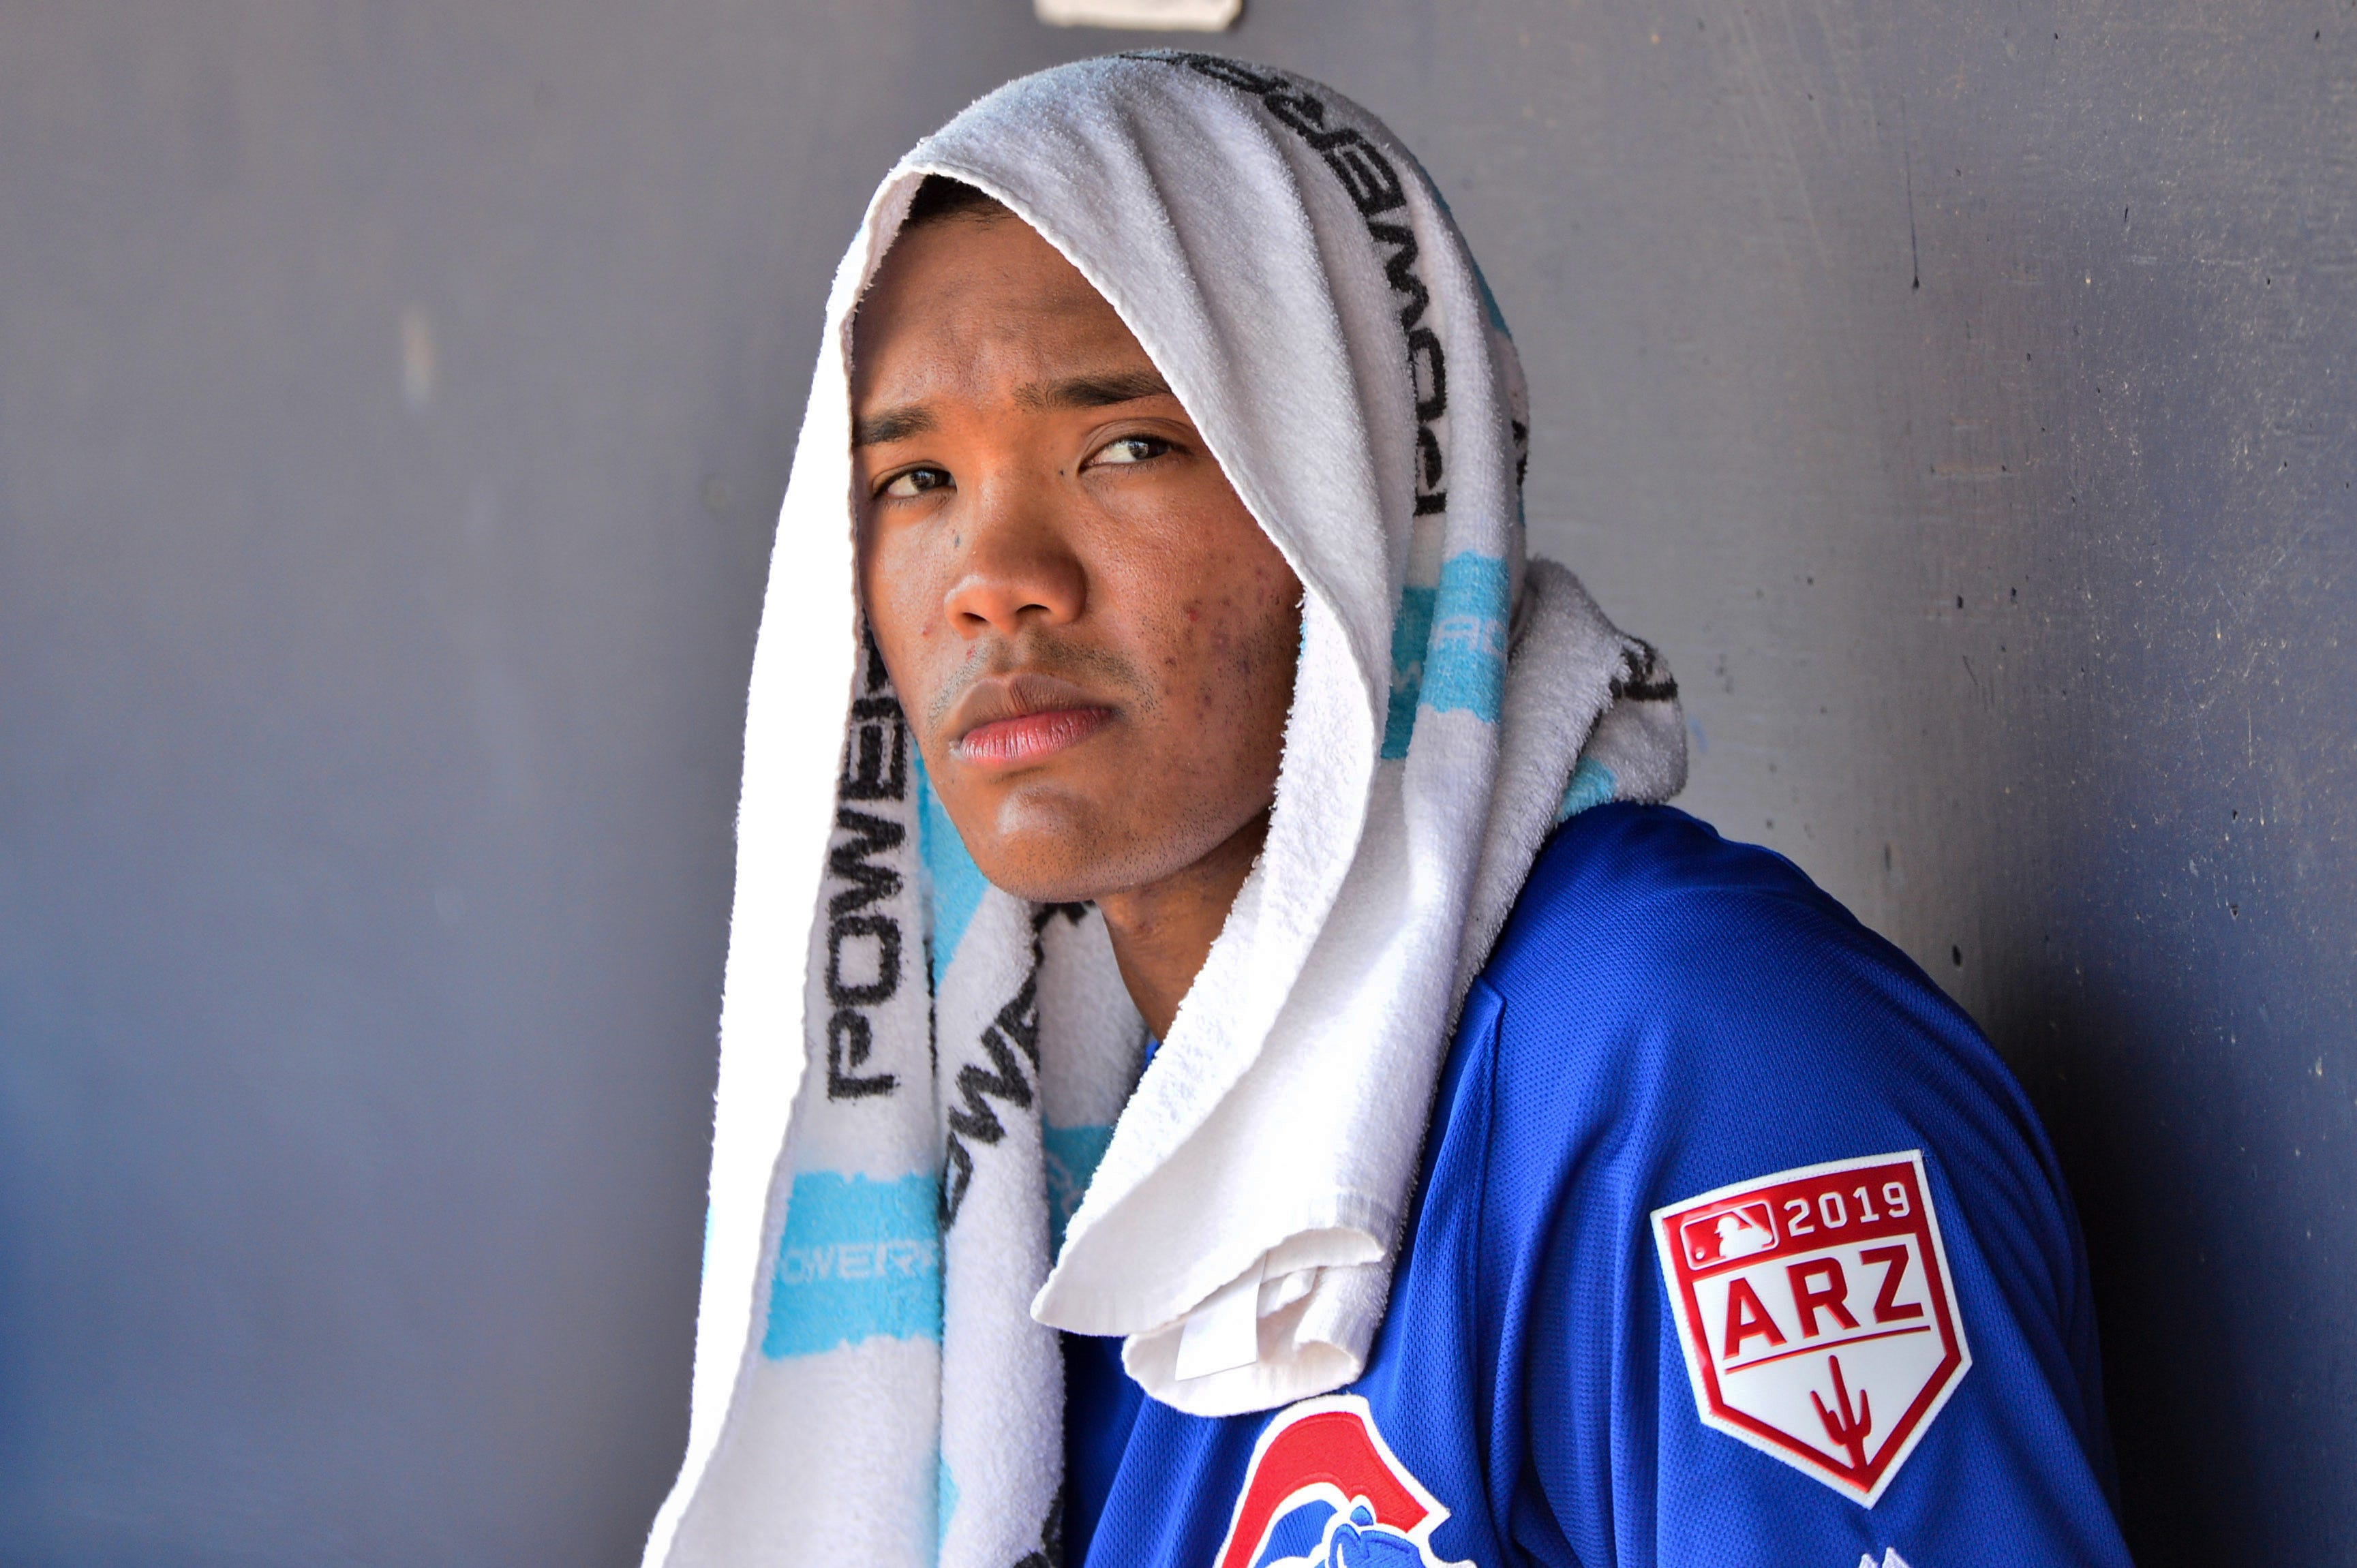 Chicago Cubs cut infielder Addison Russell, one year after domestic violence suspension